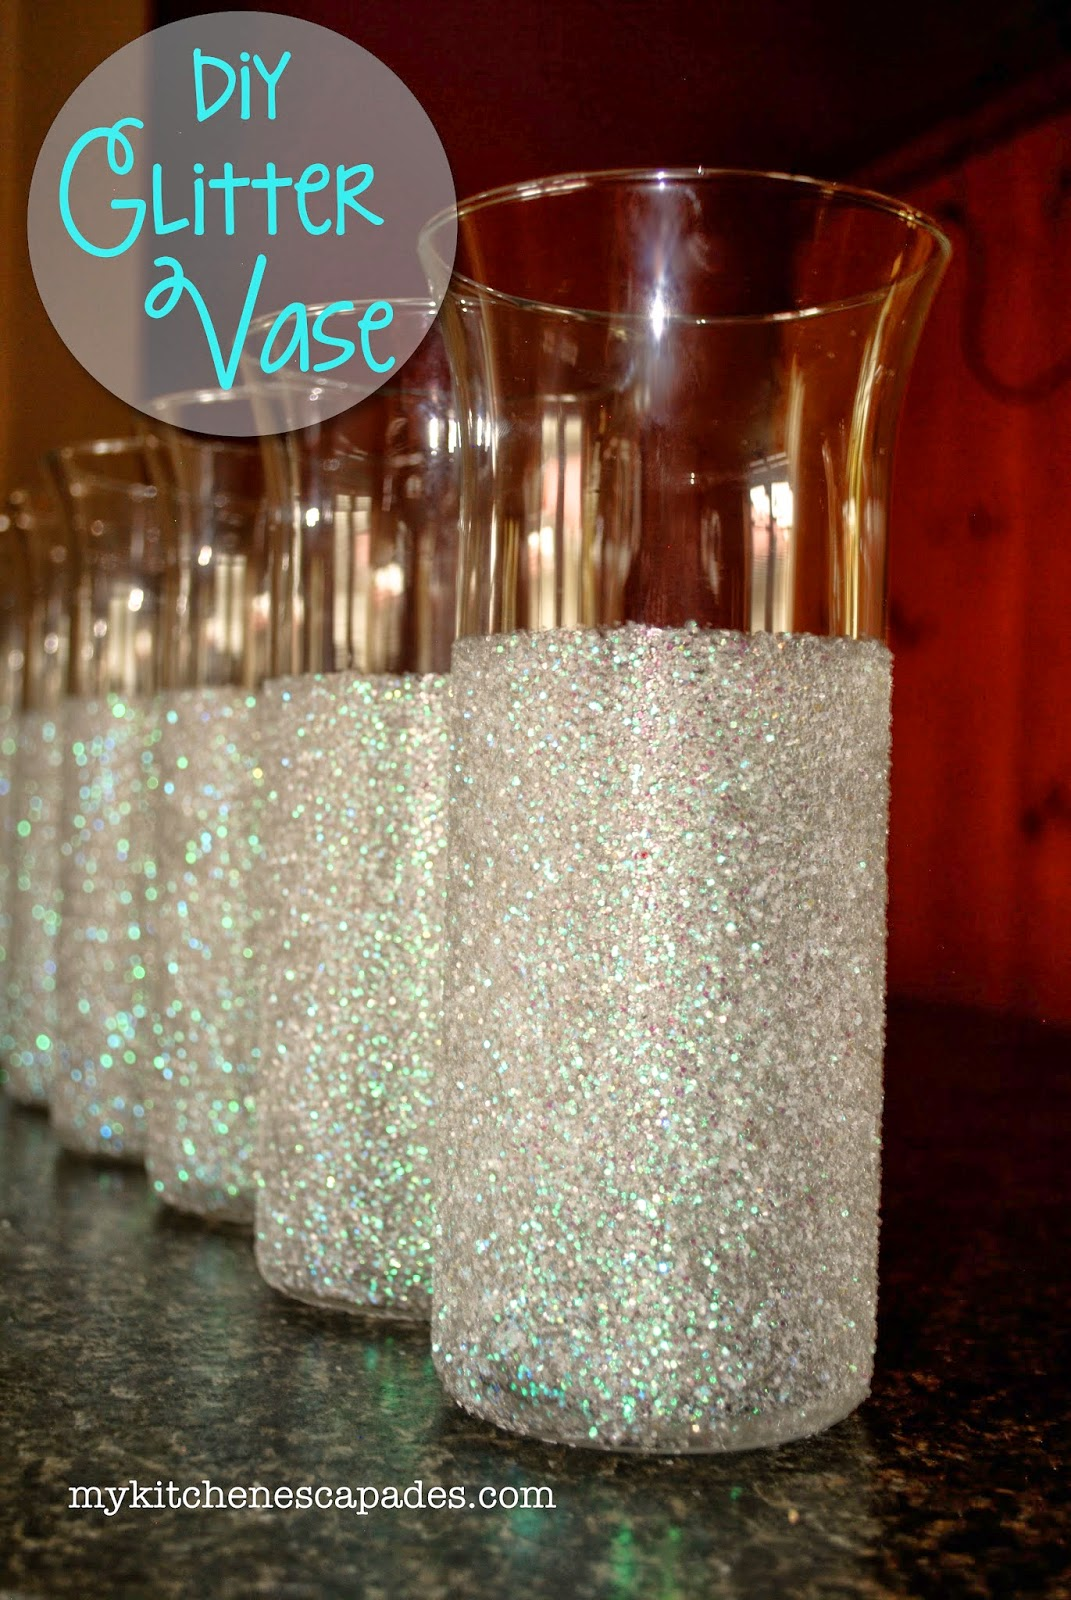 diy glitter vase - Christmas Vase Decorations